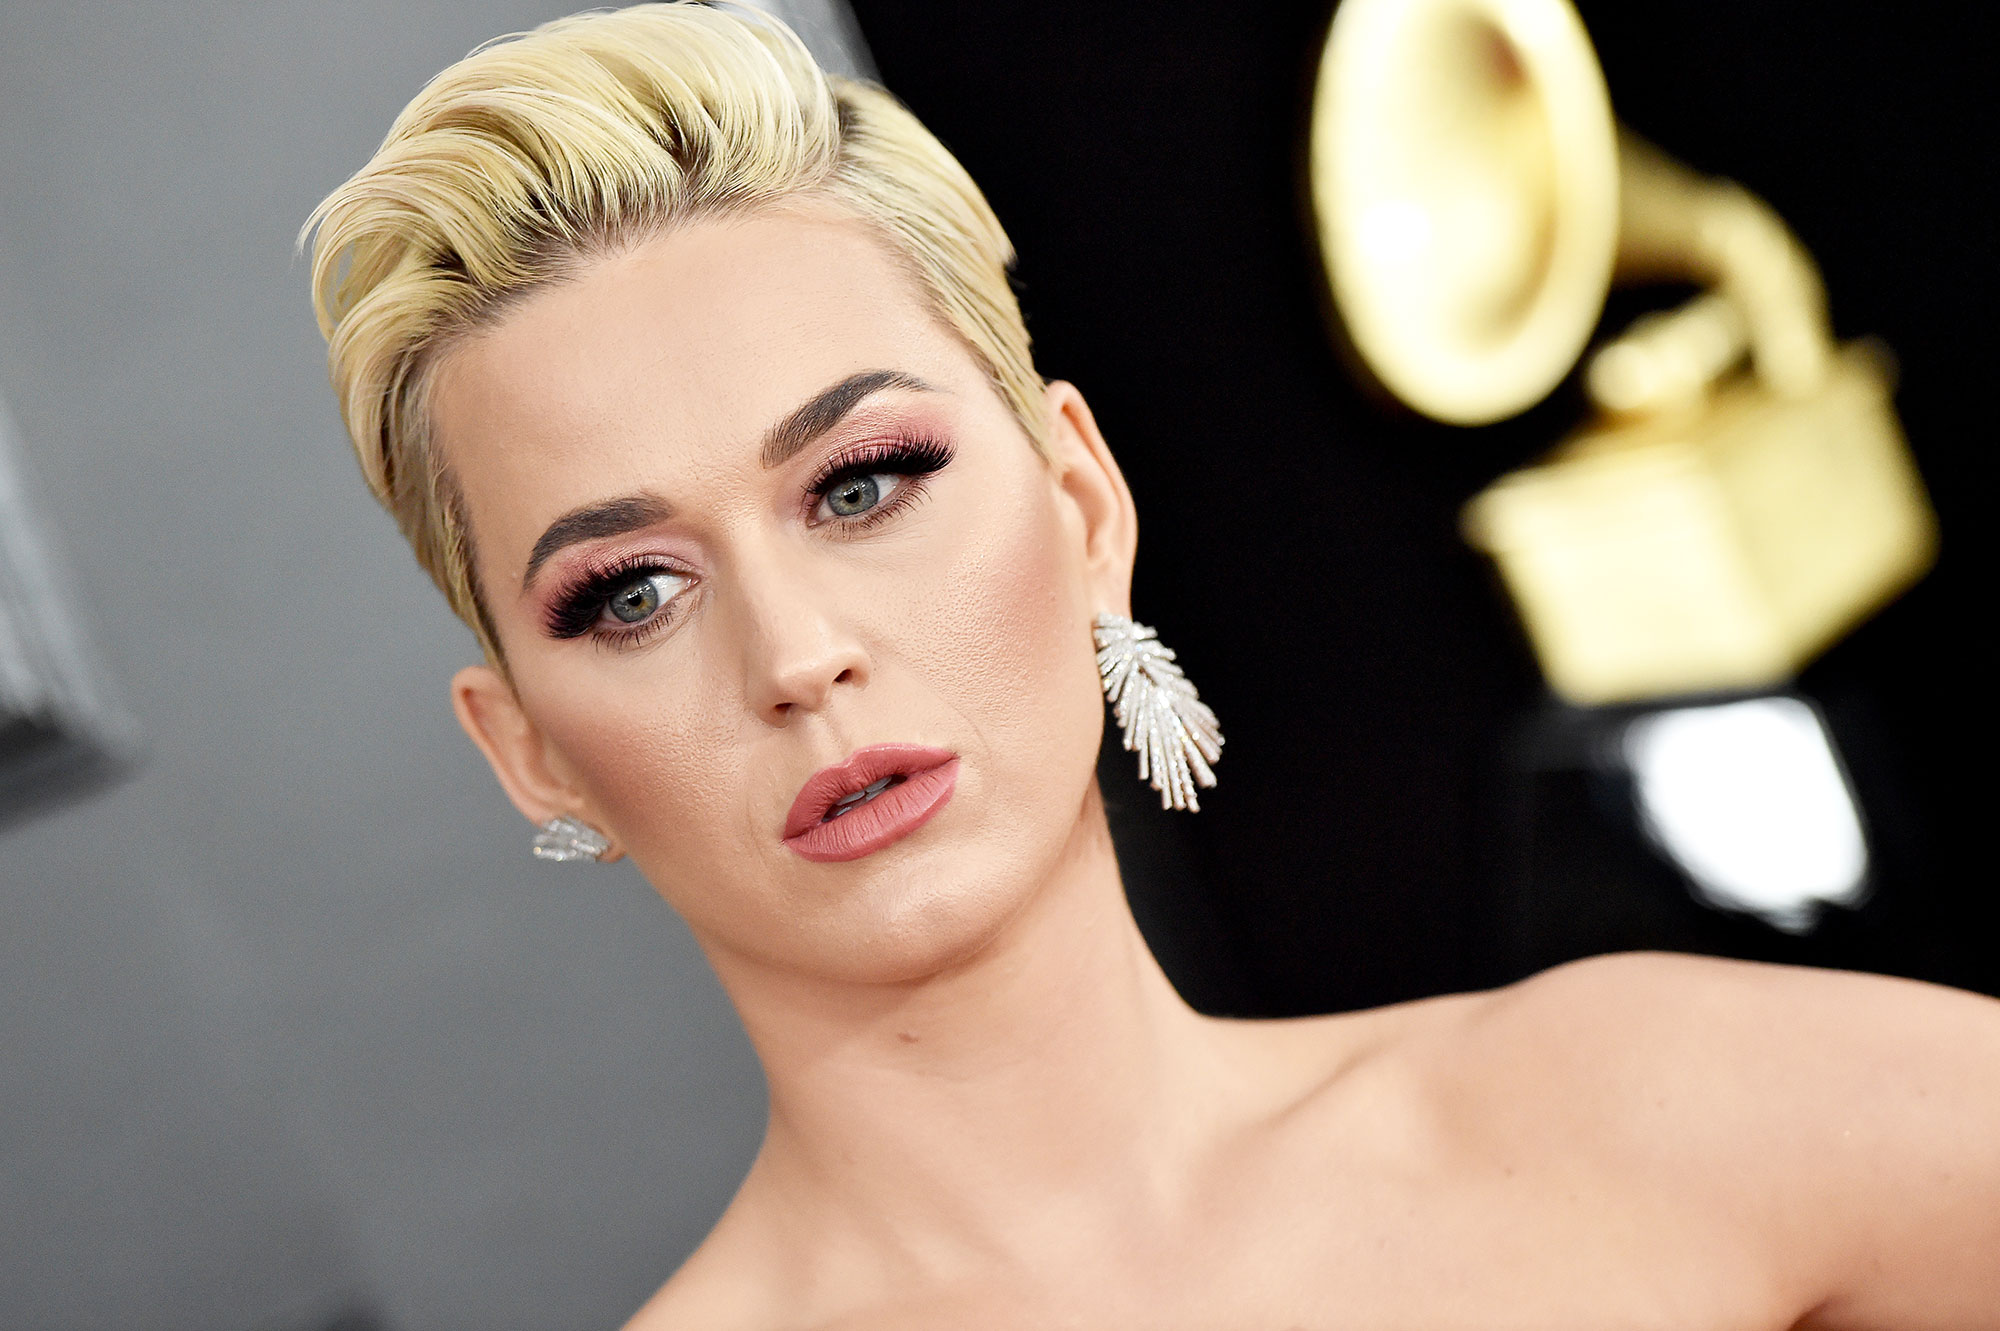 """grammys 2019 Katy Perry - The """"Fireworks"""" singer wore a pair of mismatched earrings from DJULA, with one side falling vertically and the other horizontally."""